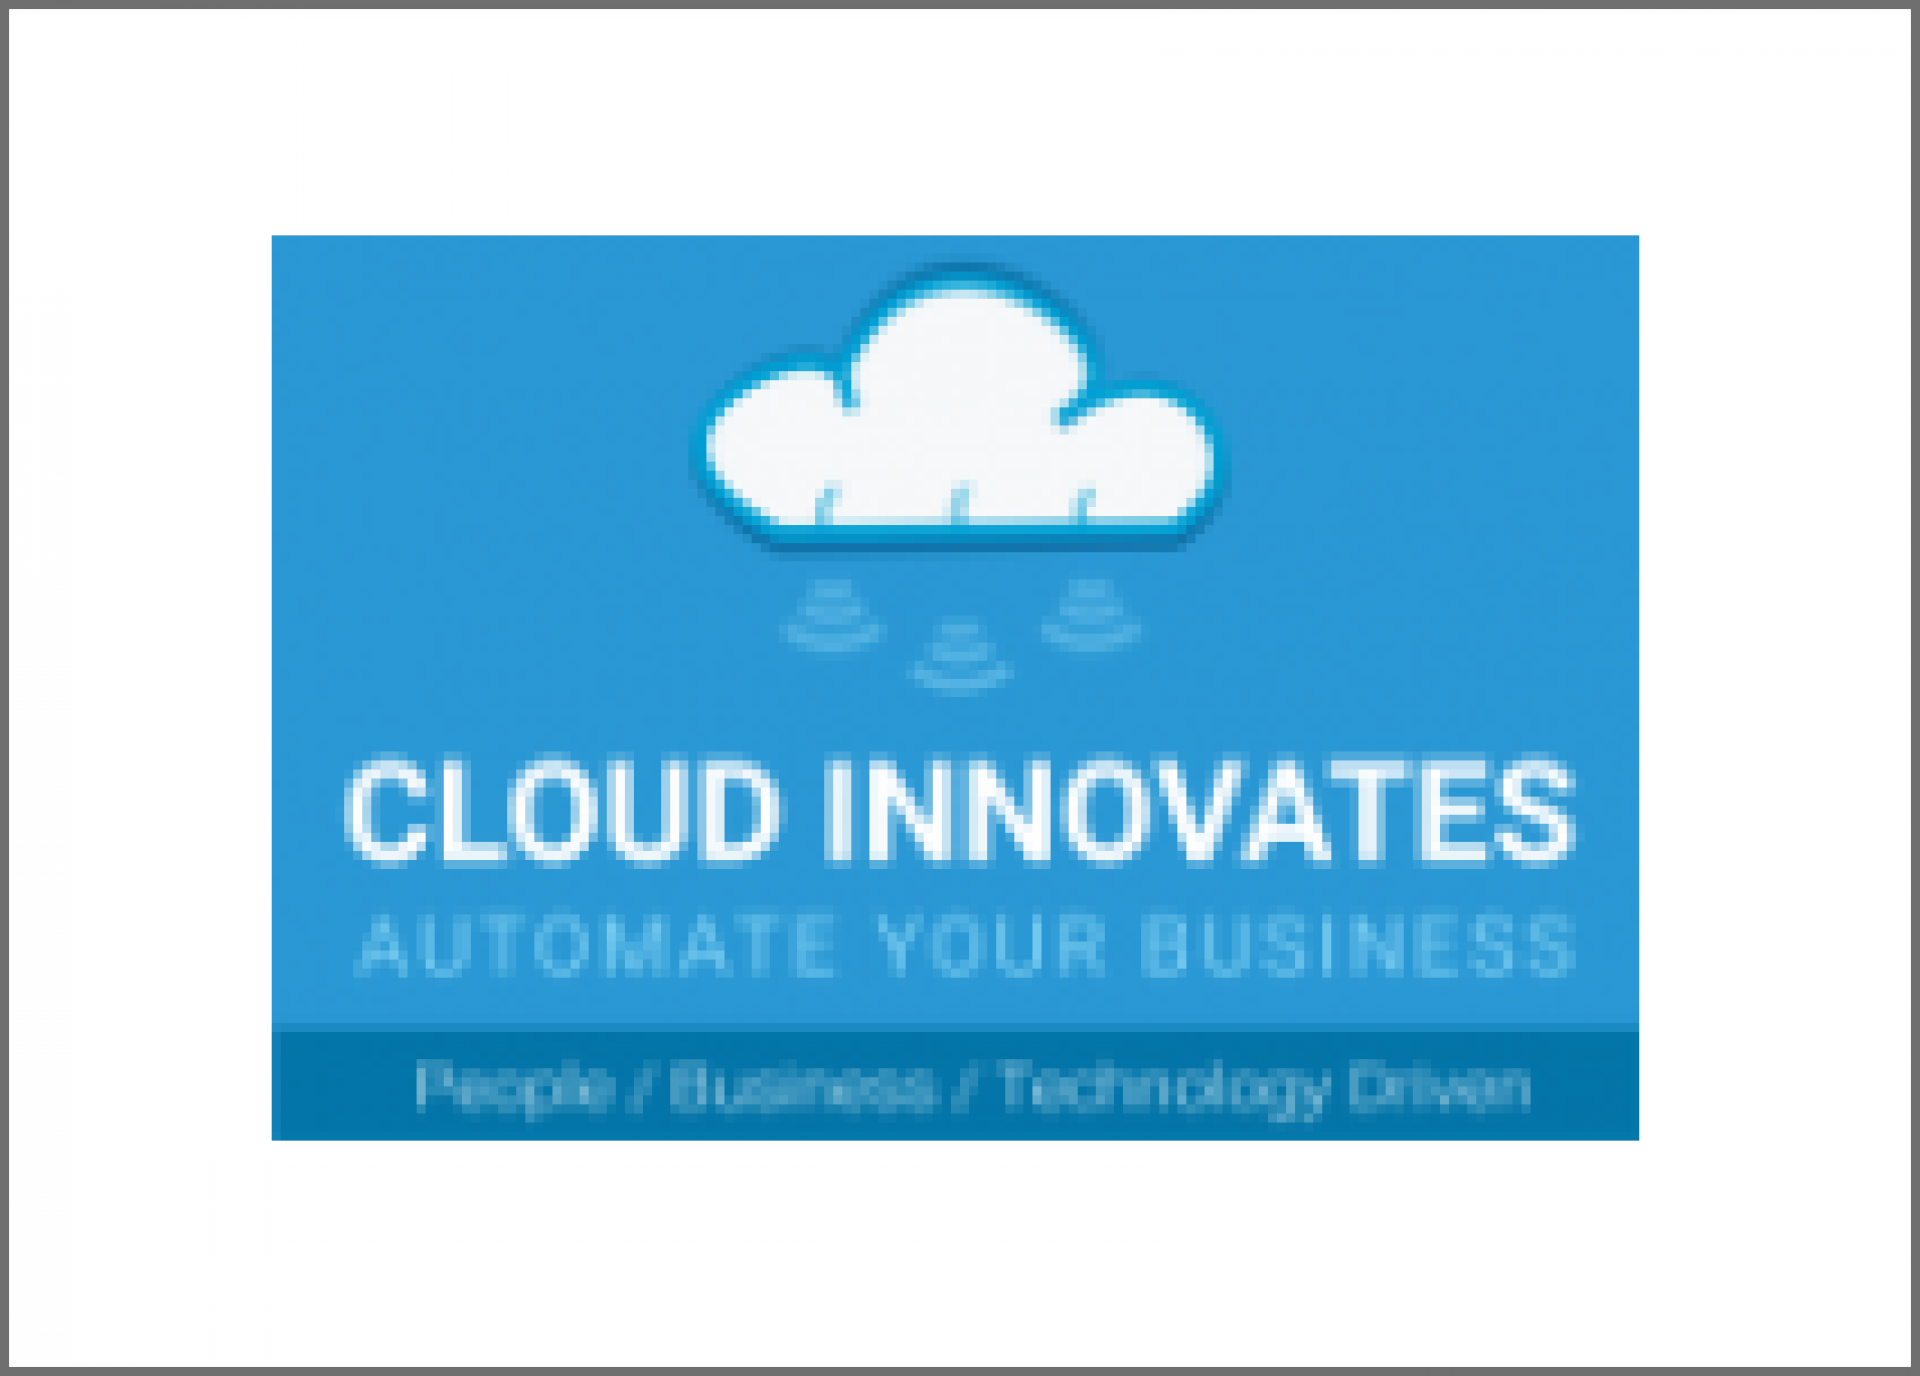 Cloud Innovates